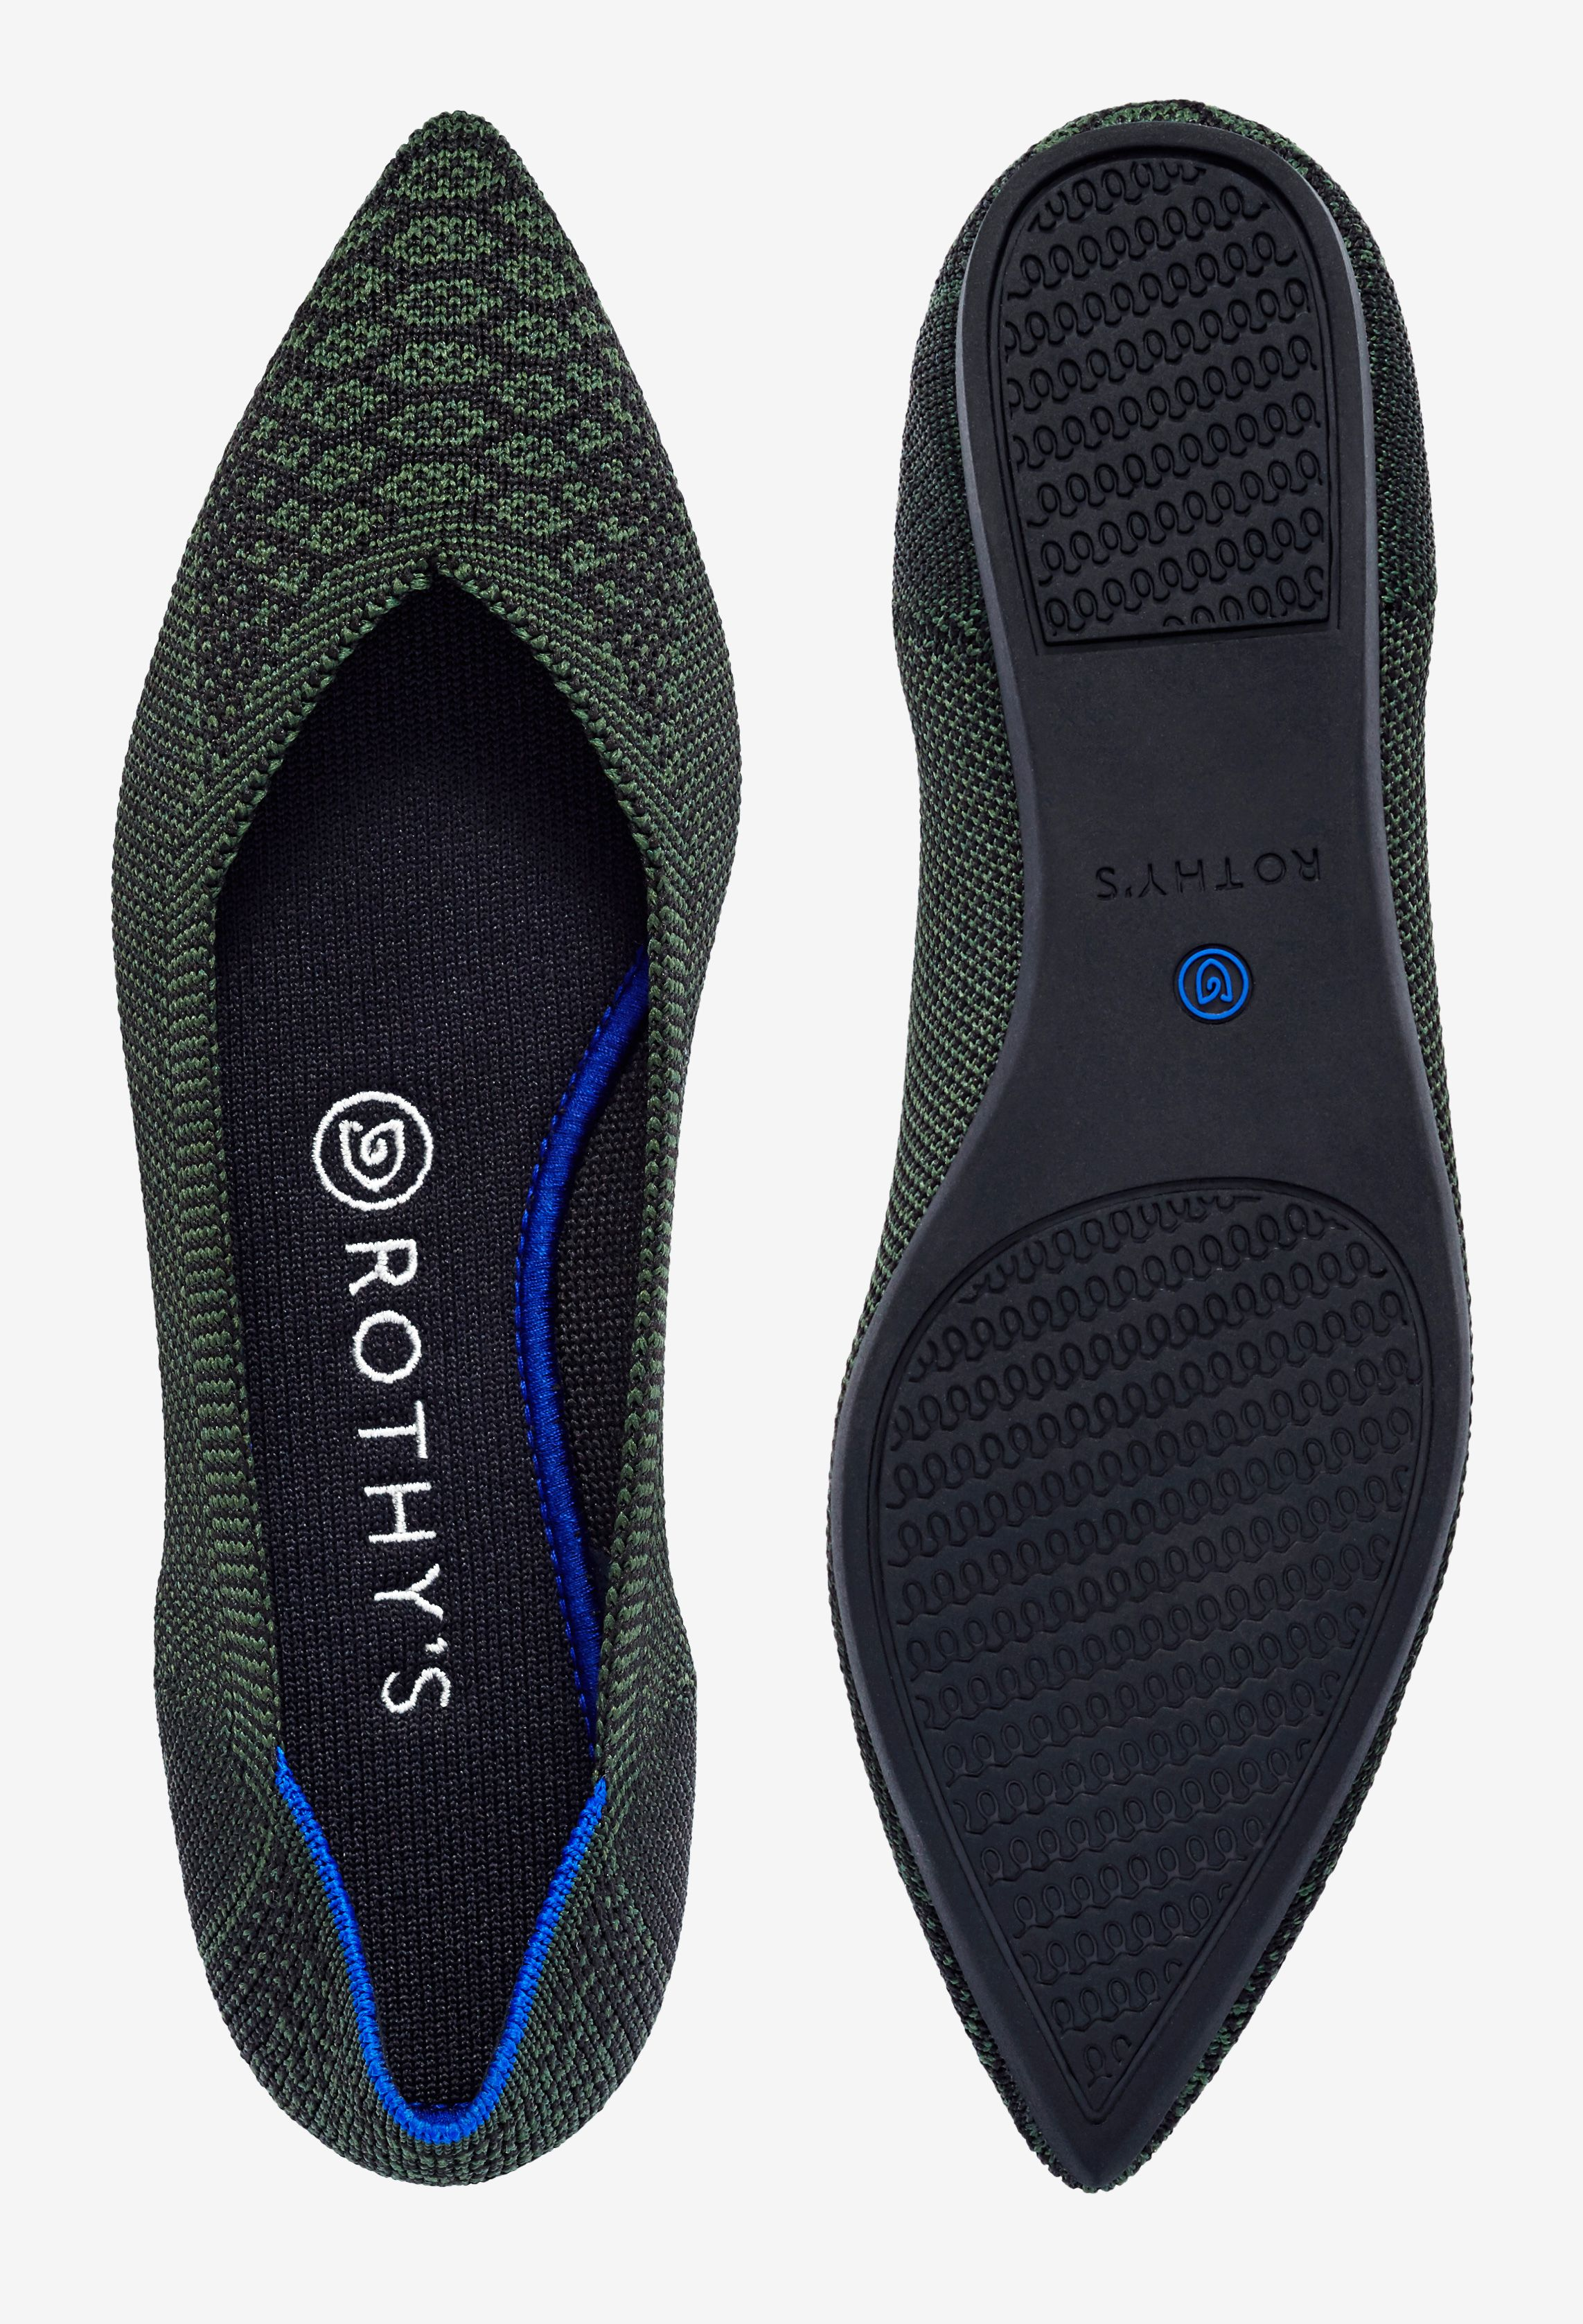 Shop Our Comfortable Stylish Versatile Women S Ballet Flats 3d Knit Using Fiber From Recycled Water Bottles They A With Images Work Shoes Women Flats Shoes Comfortable